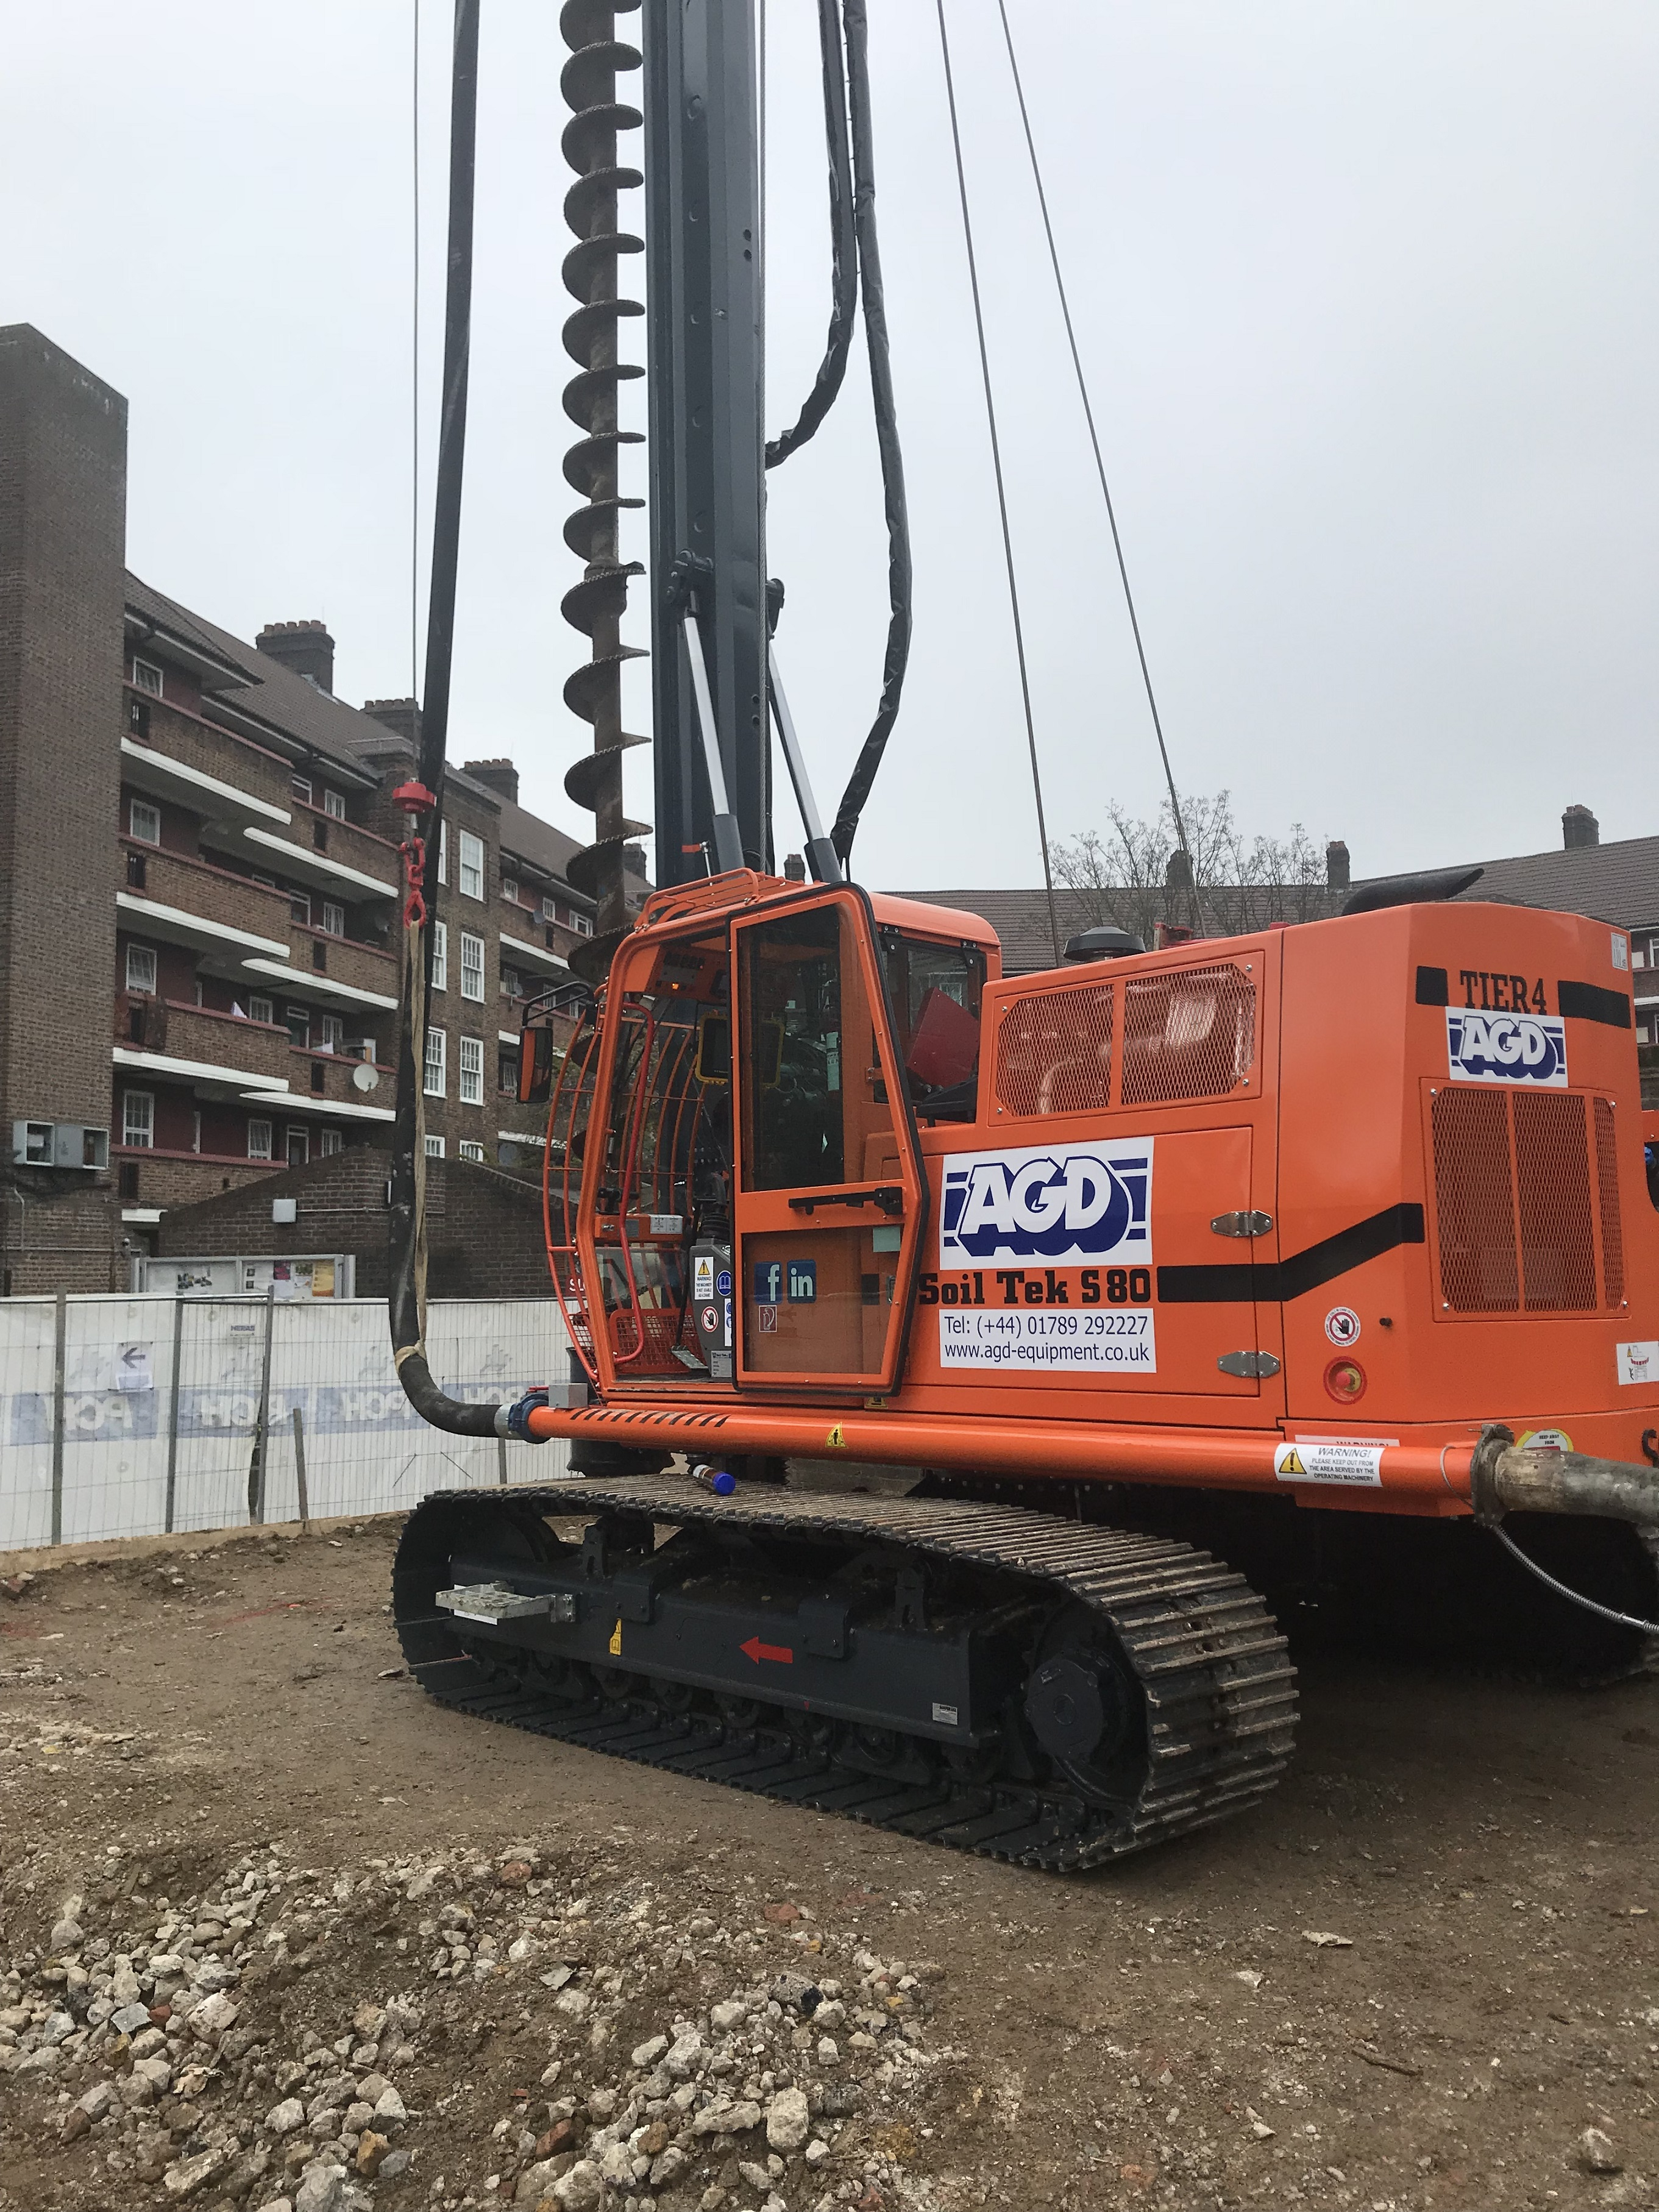 Soiltek S80 compact CFA piling rig for hire